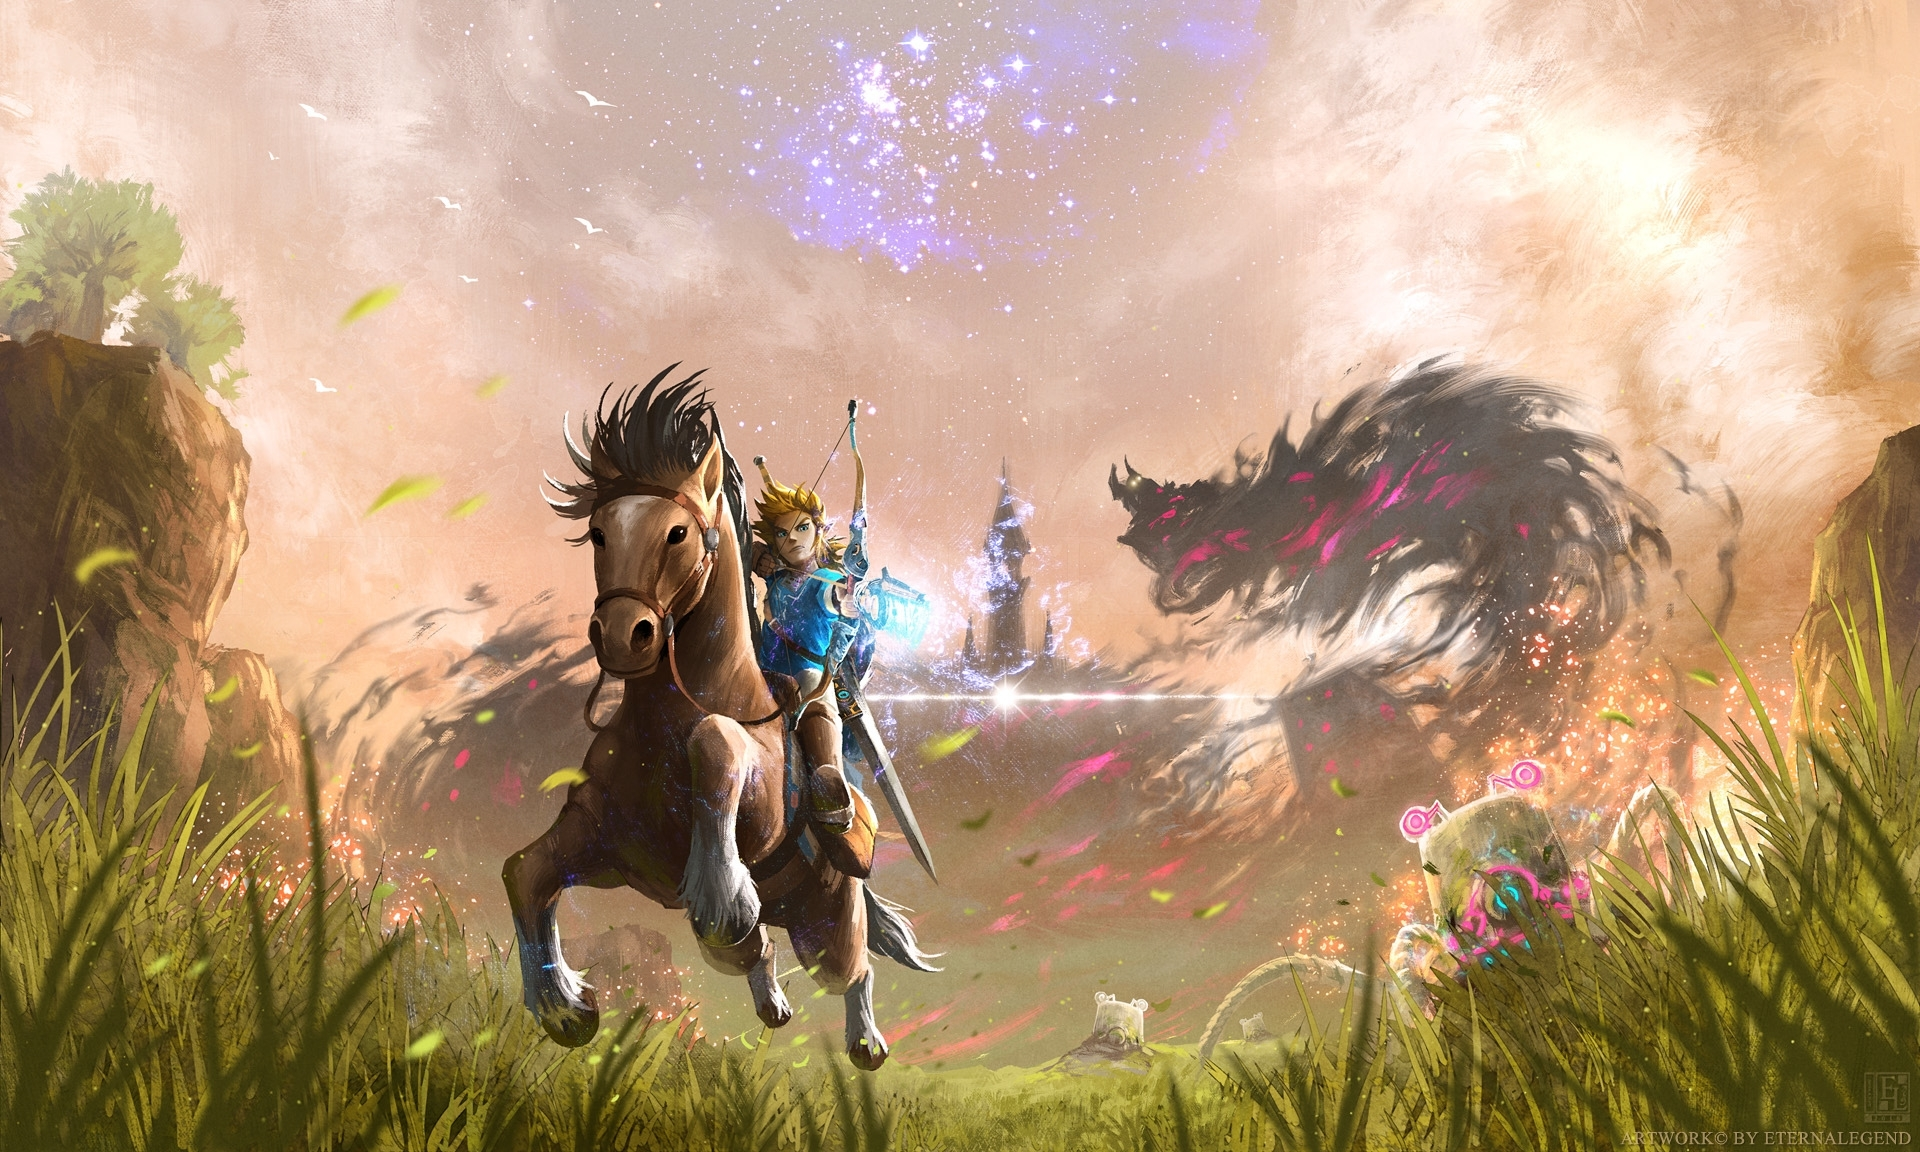 10 Latest Zelda Breath Of The Wild Wallpapers FULL HD 1920×1080 For PC Background 2020